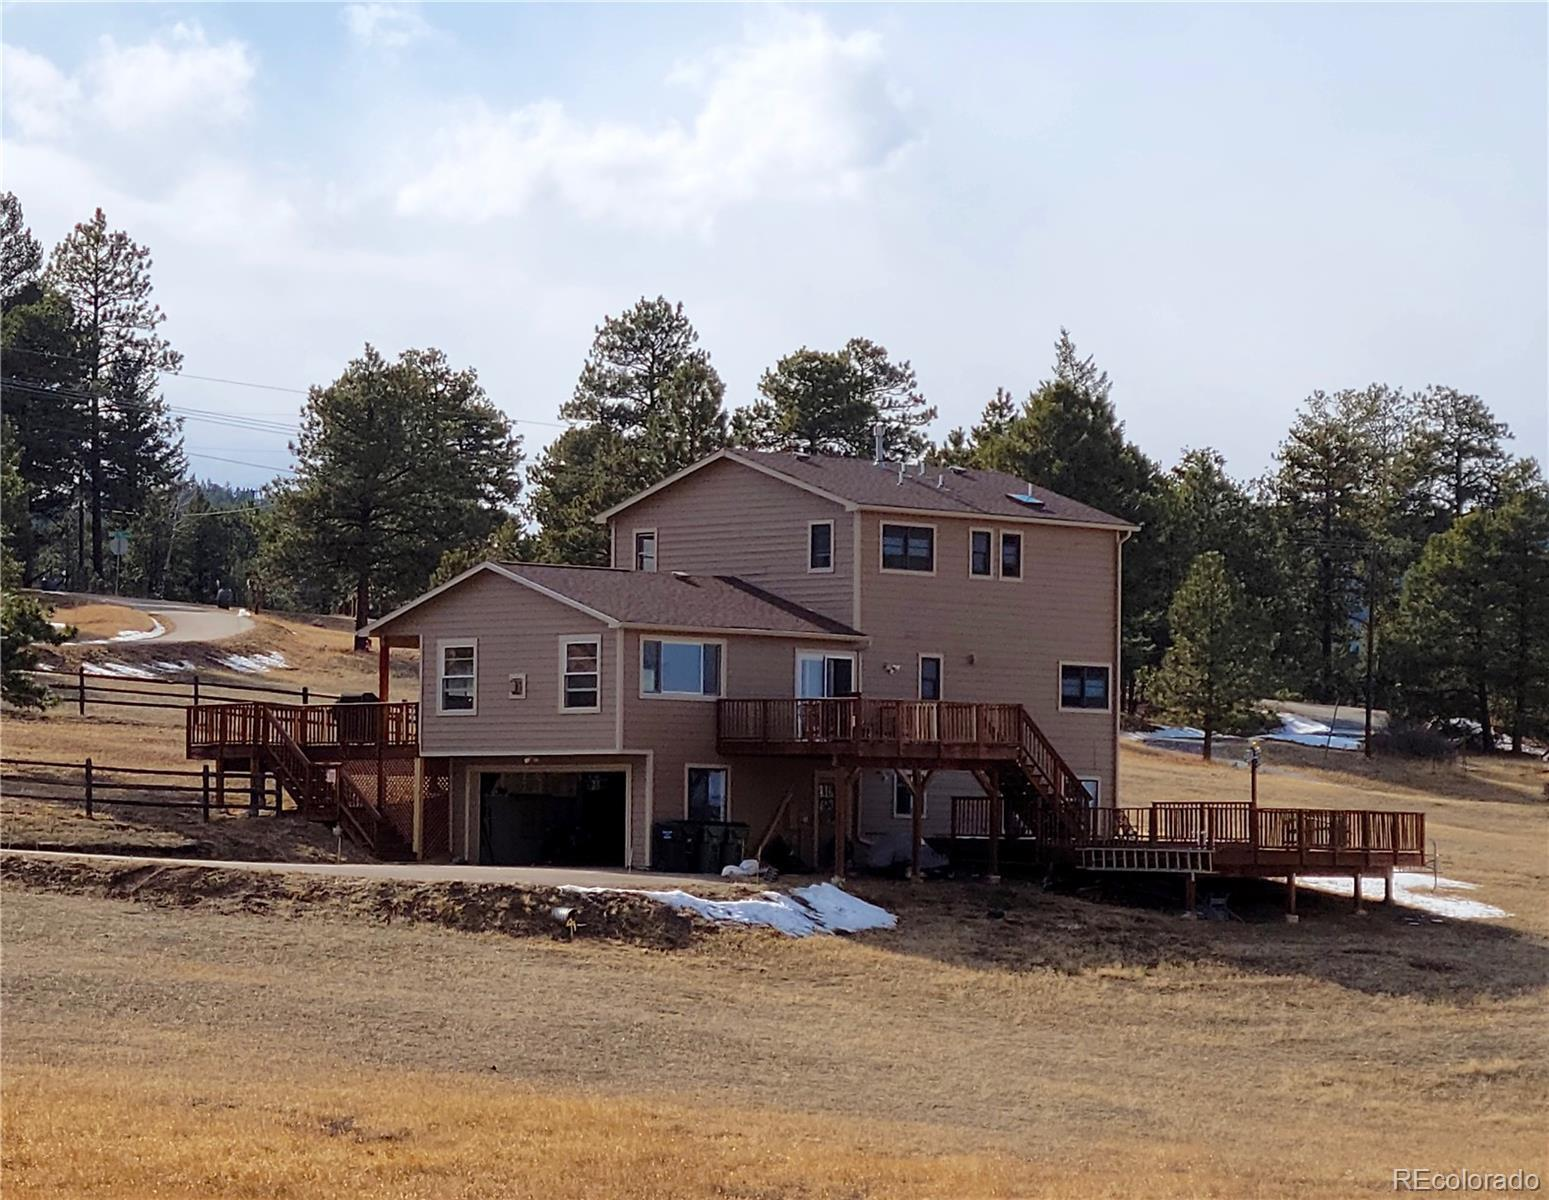 6210 Highway 73, Evergreen, CO 80439 - #: 3741304